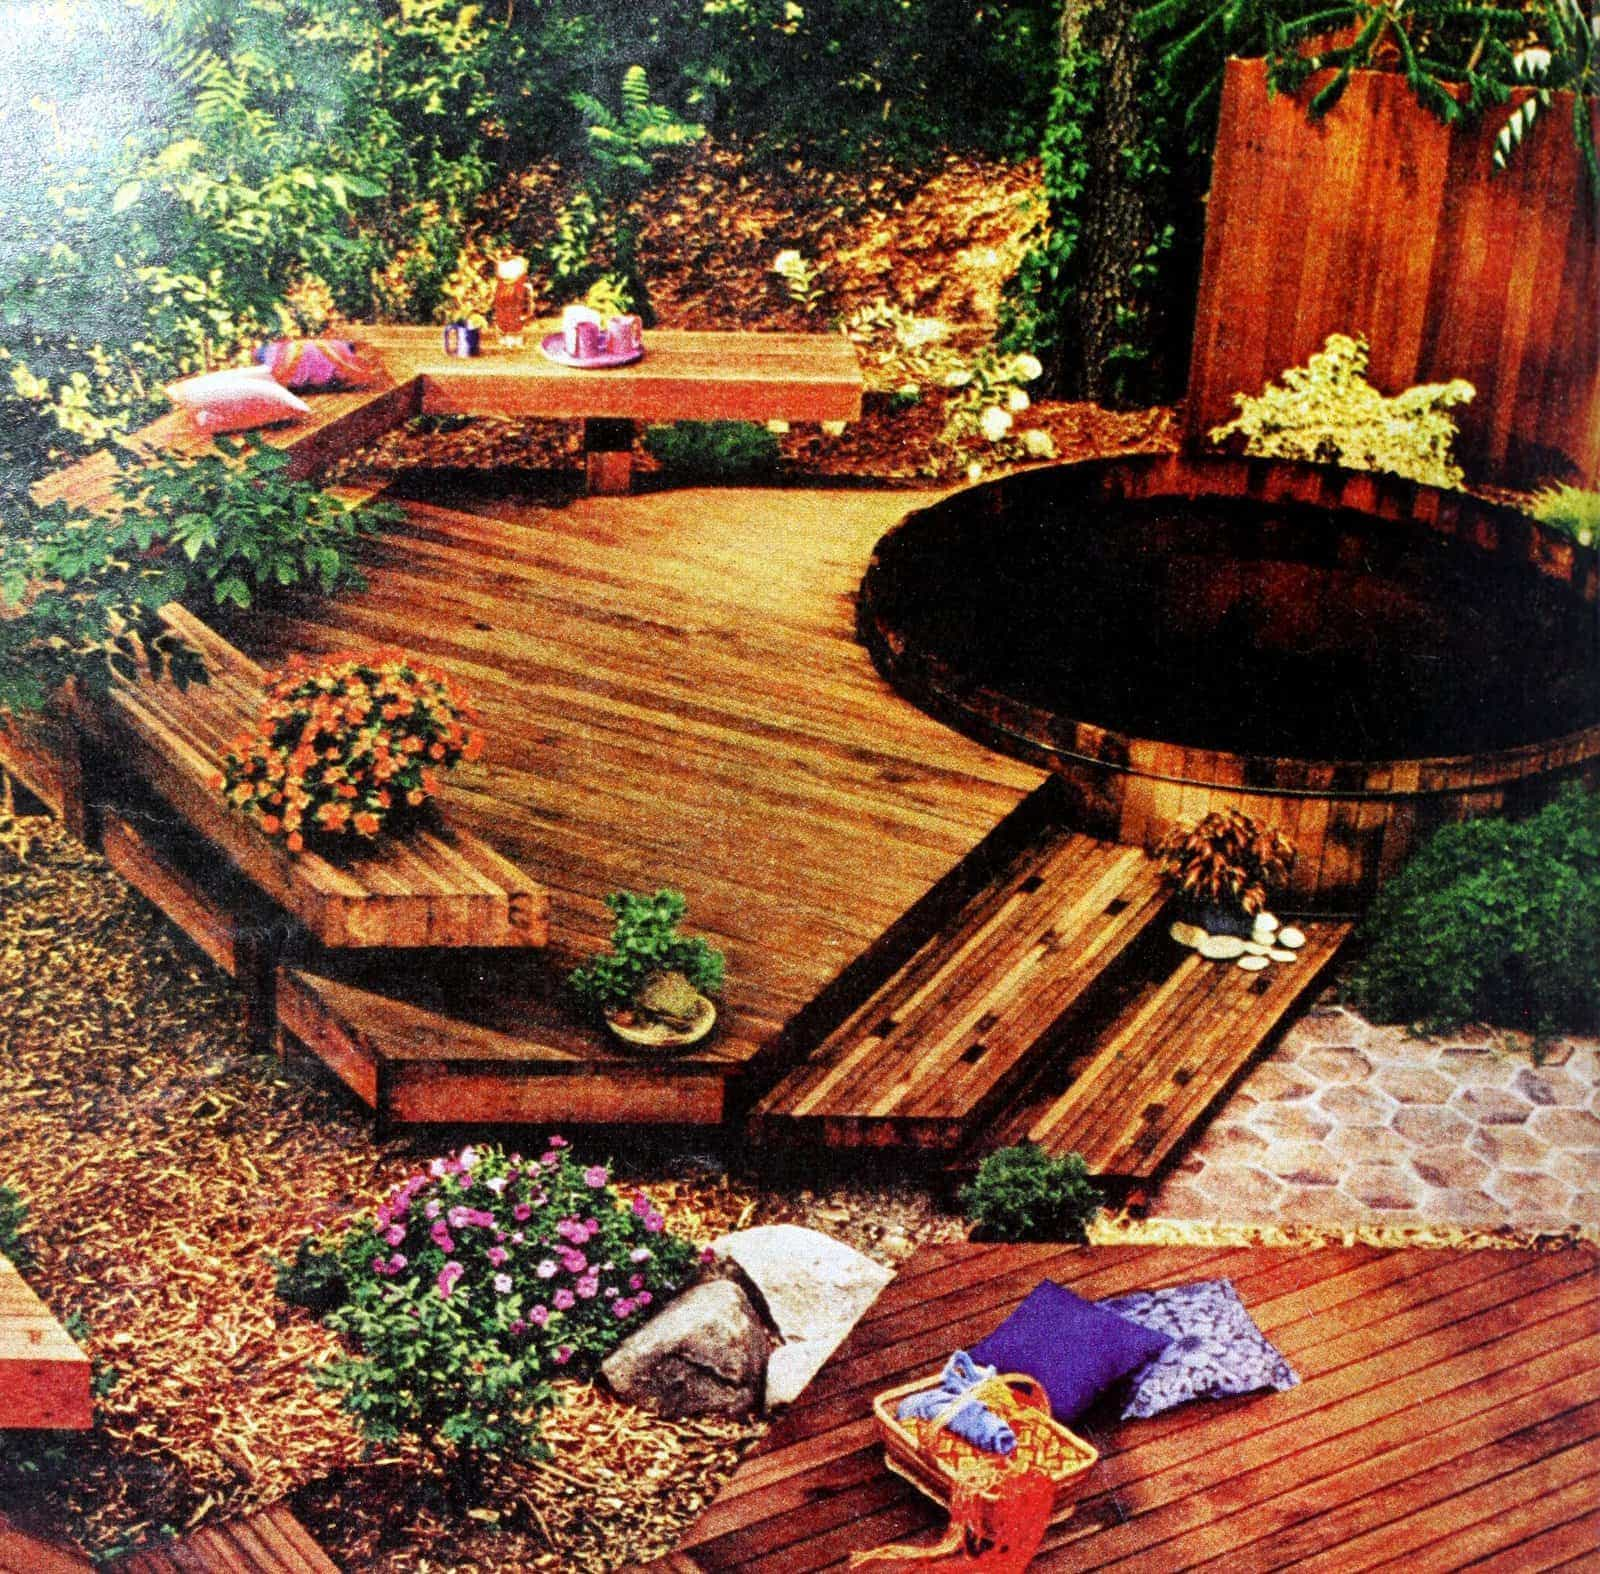 Vintage wooden deck with built-in backyard seating area